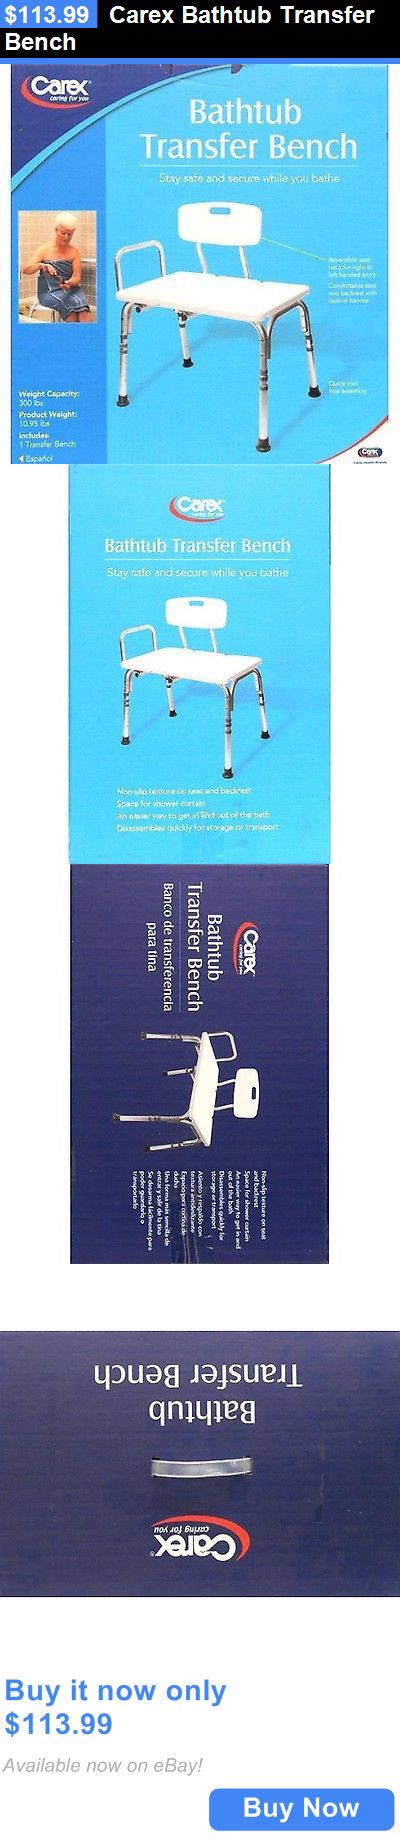 Transfer Boards and Benches: Carex Bathtub Transfer Bench BUY IT NOW ONLY: $113.99